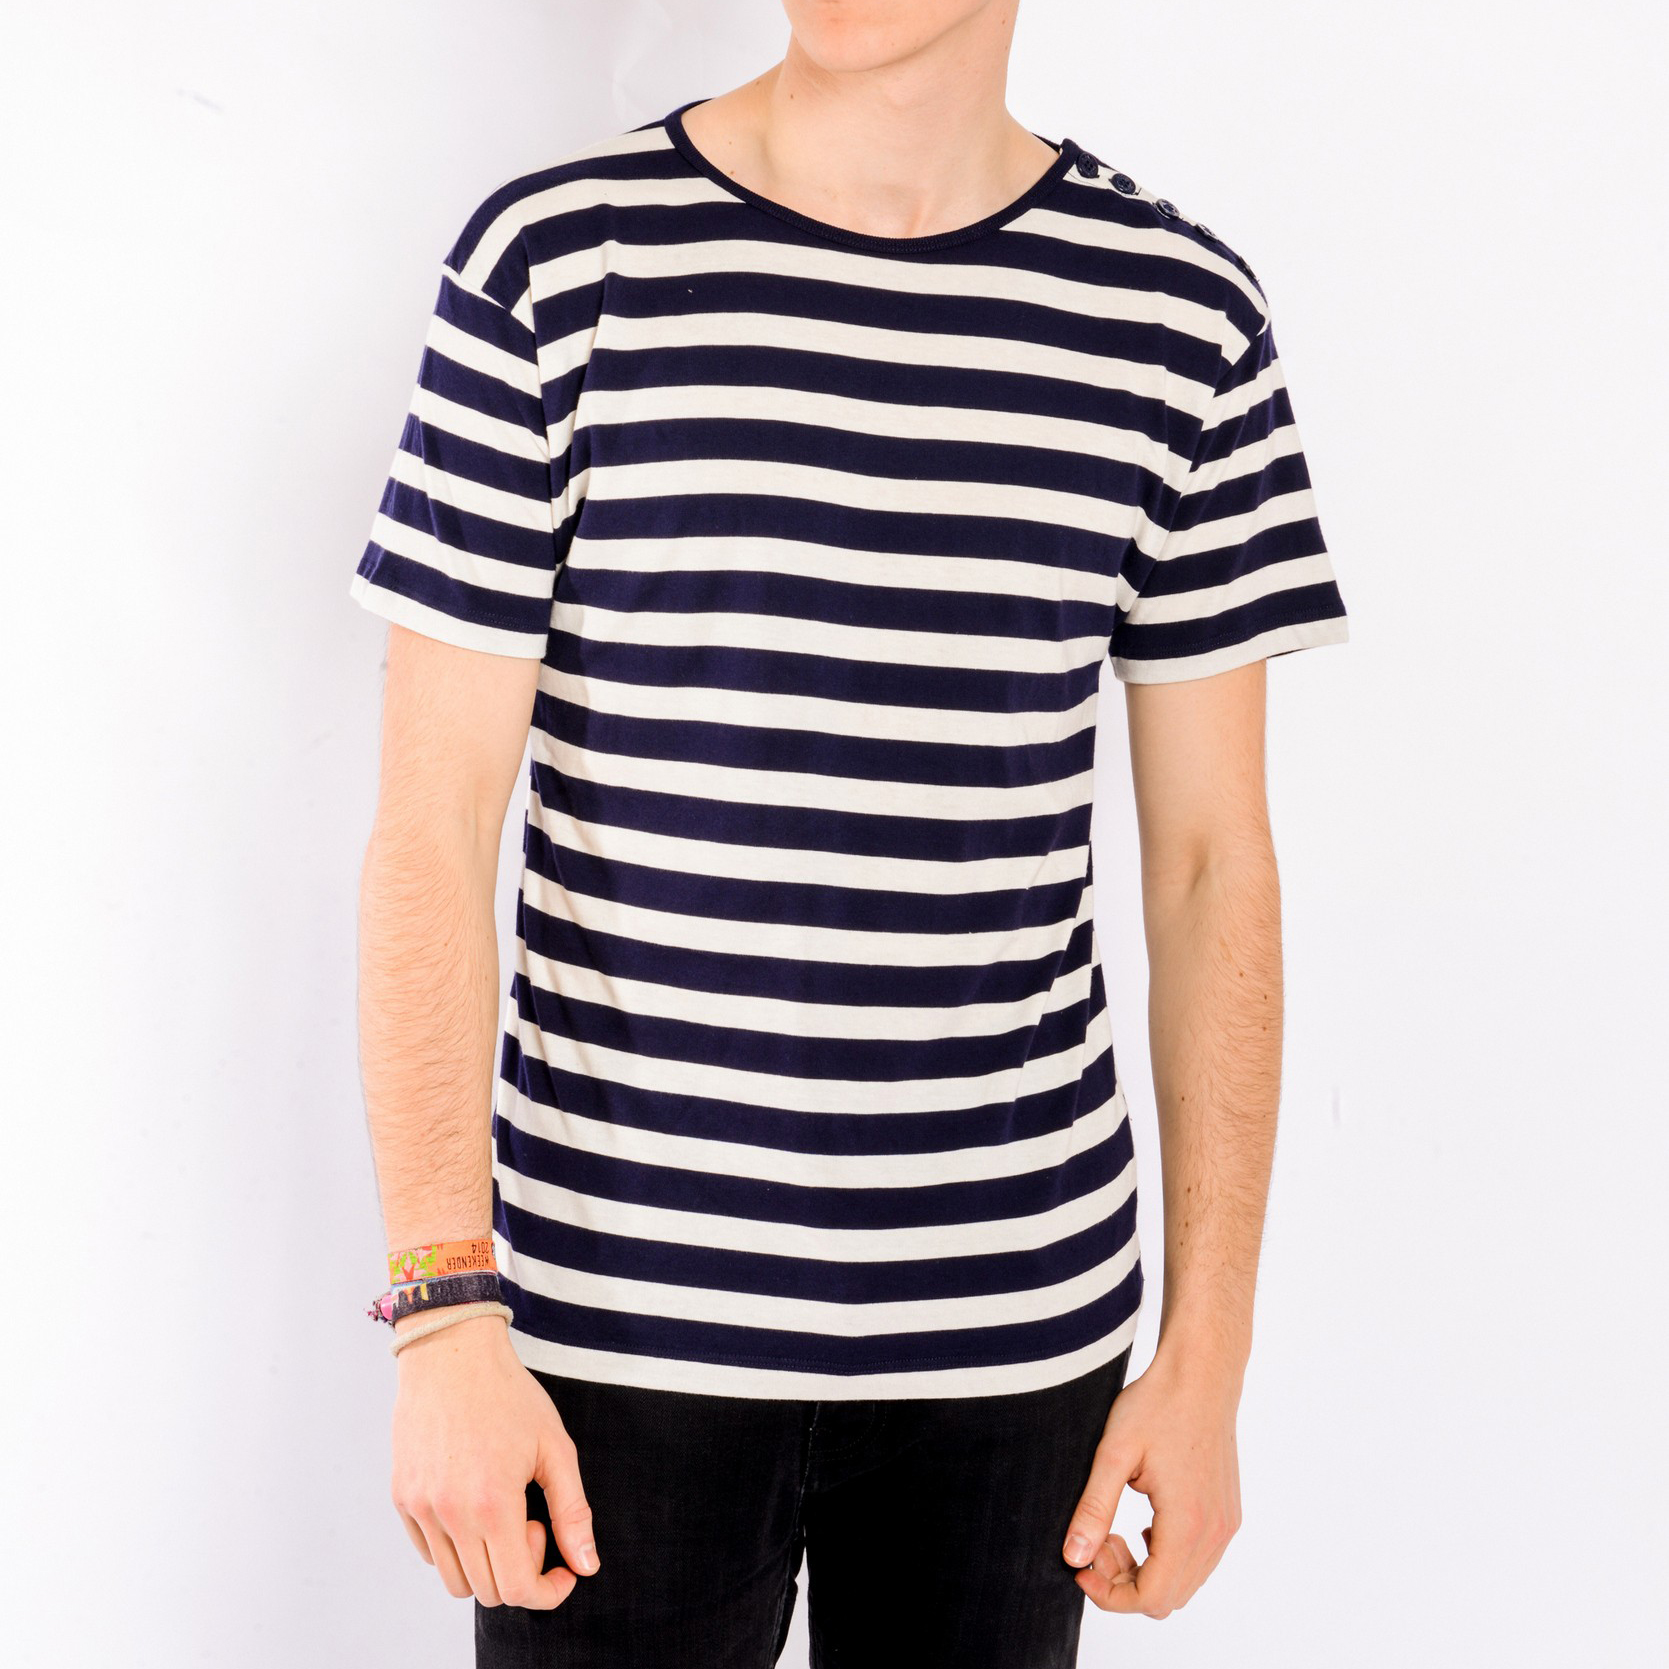 Shop for white shirt navy stripes online at Target. Free shipping on purchases over $35 and save 5% every day with your Target REDcard.